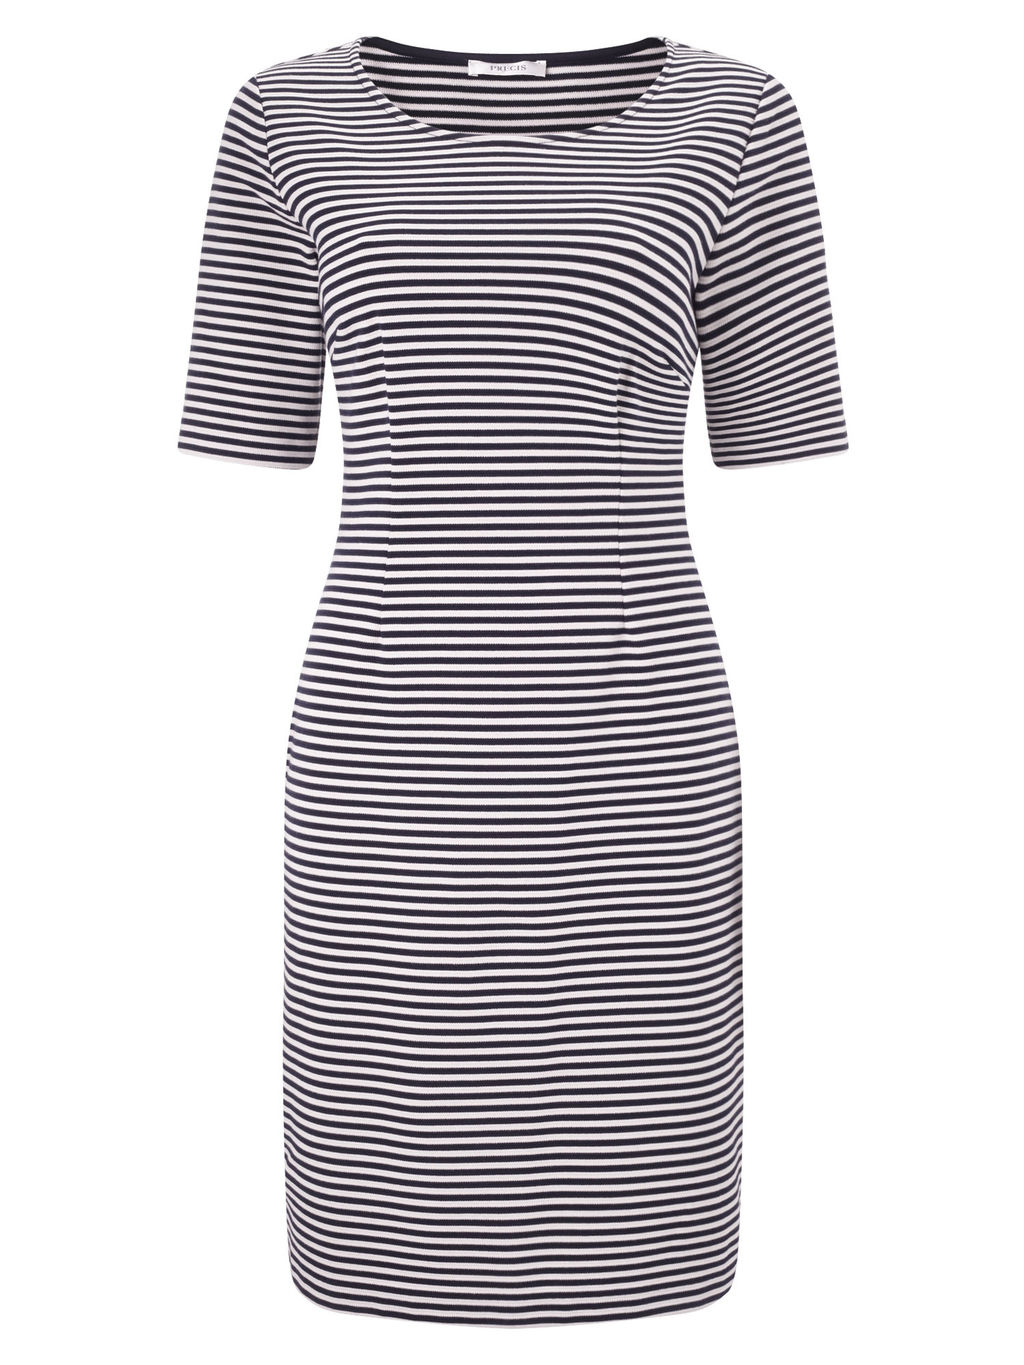 Stripe Dress, Blue/Multi - style: shift; neckline: round neck; fit: tailored/fitted; pattern: horizontal stripes; secondary colour: white; predominant colour: navy; occasions: casual, creative work; length: on the knee; fibres: polyester/polyamide - stretch; sleeve length: short sleeve; sleeve style: standard; texture group: jersey - clingy; pattern type: fabric; pattern size: standard; season: s/s 2016; wardrobe: basic